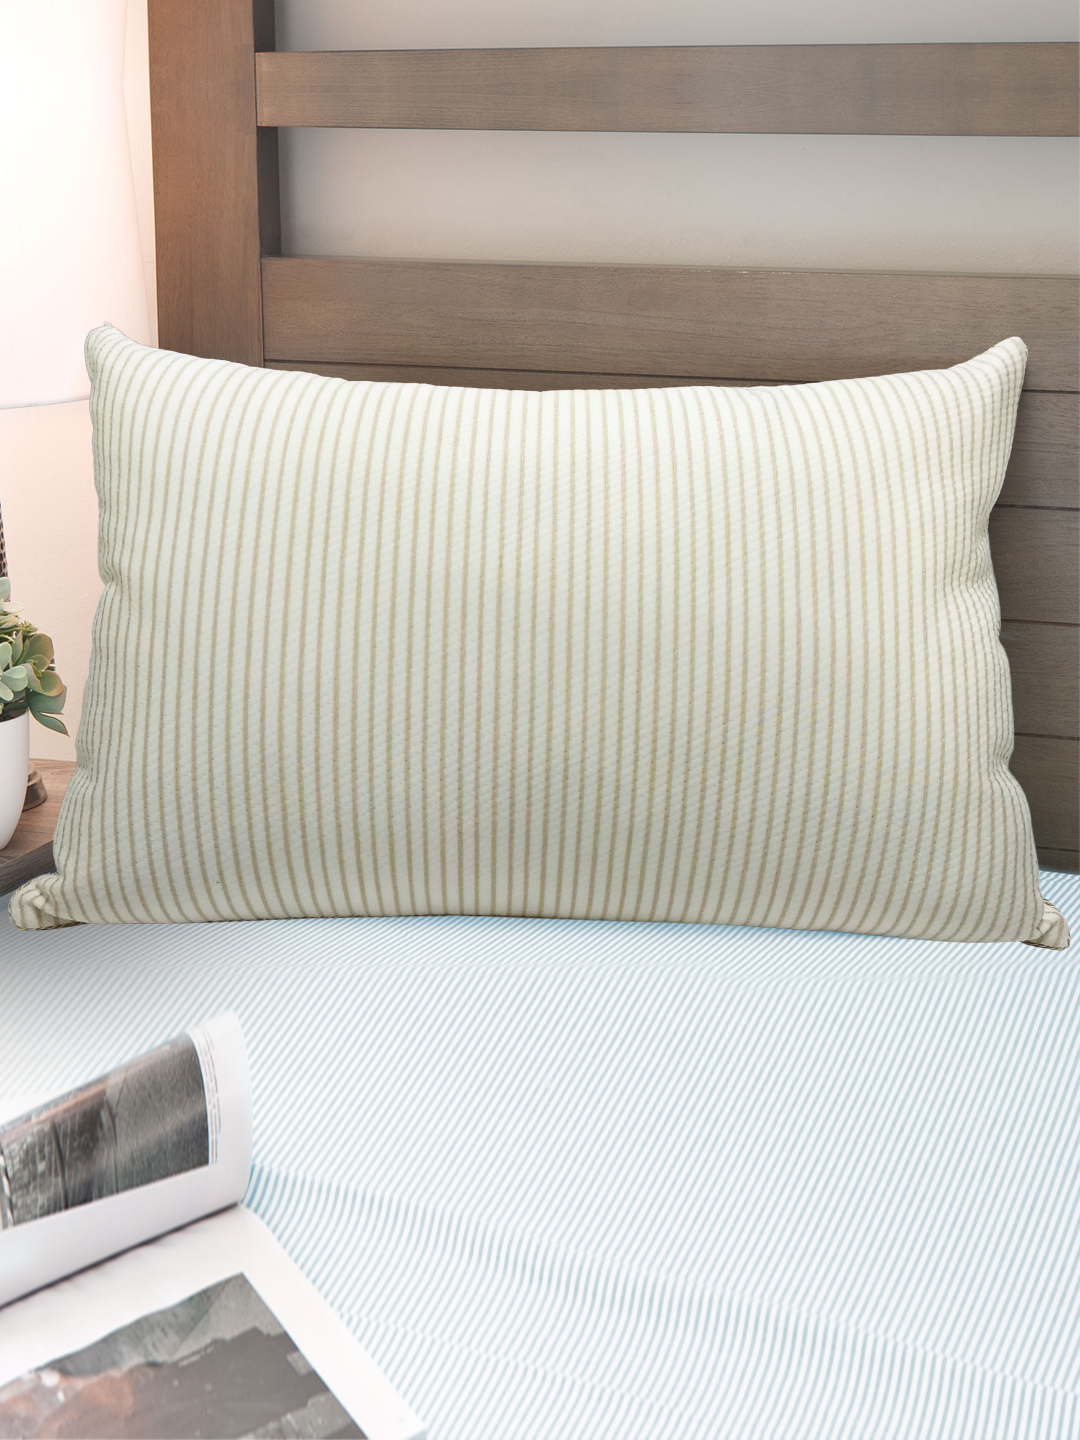 Copper Pillow Beige Cotton Fibre Pillows in White, Beige Colour by Tangerine